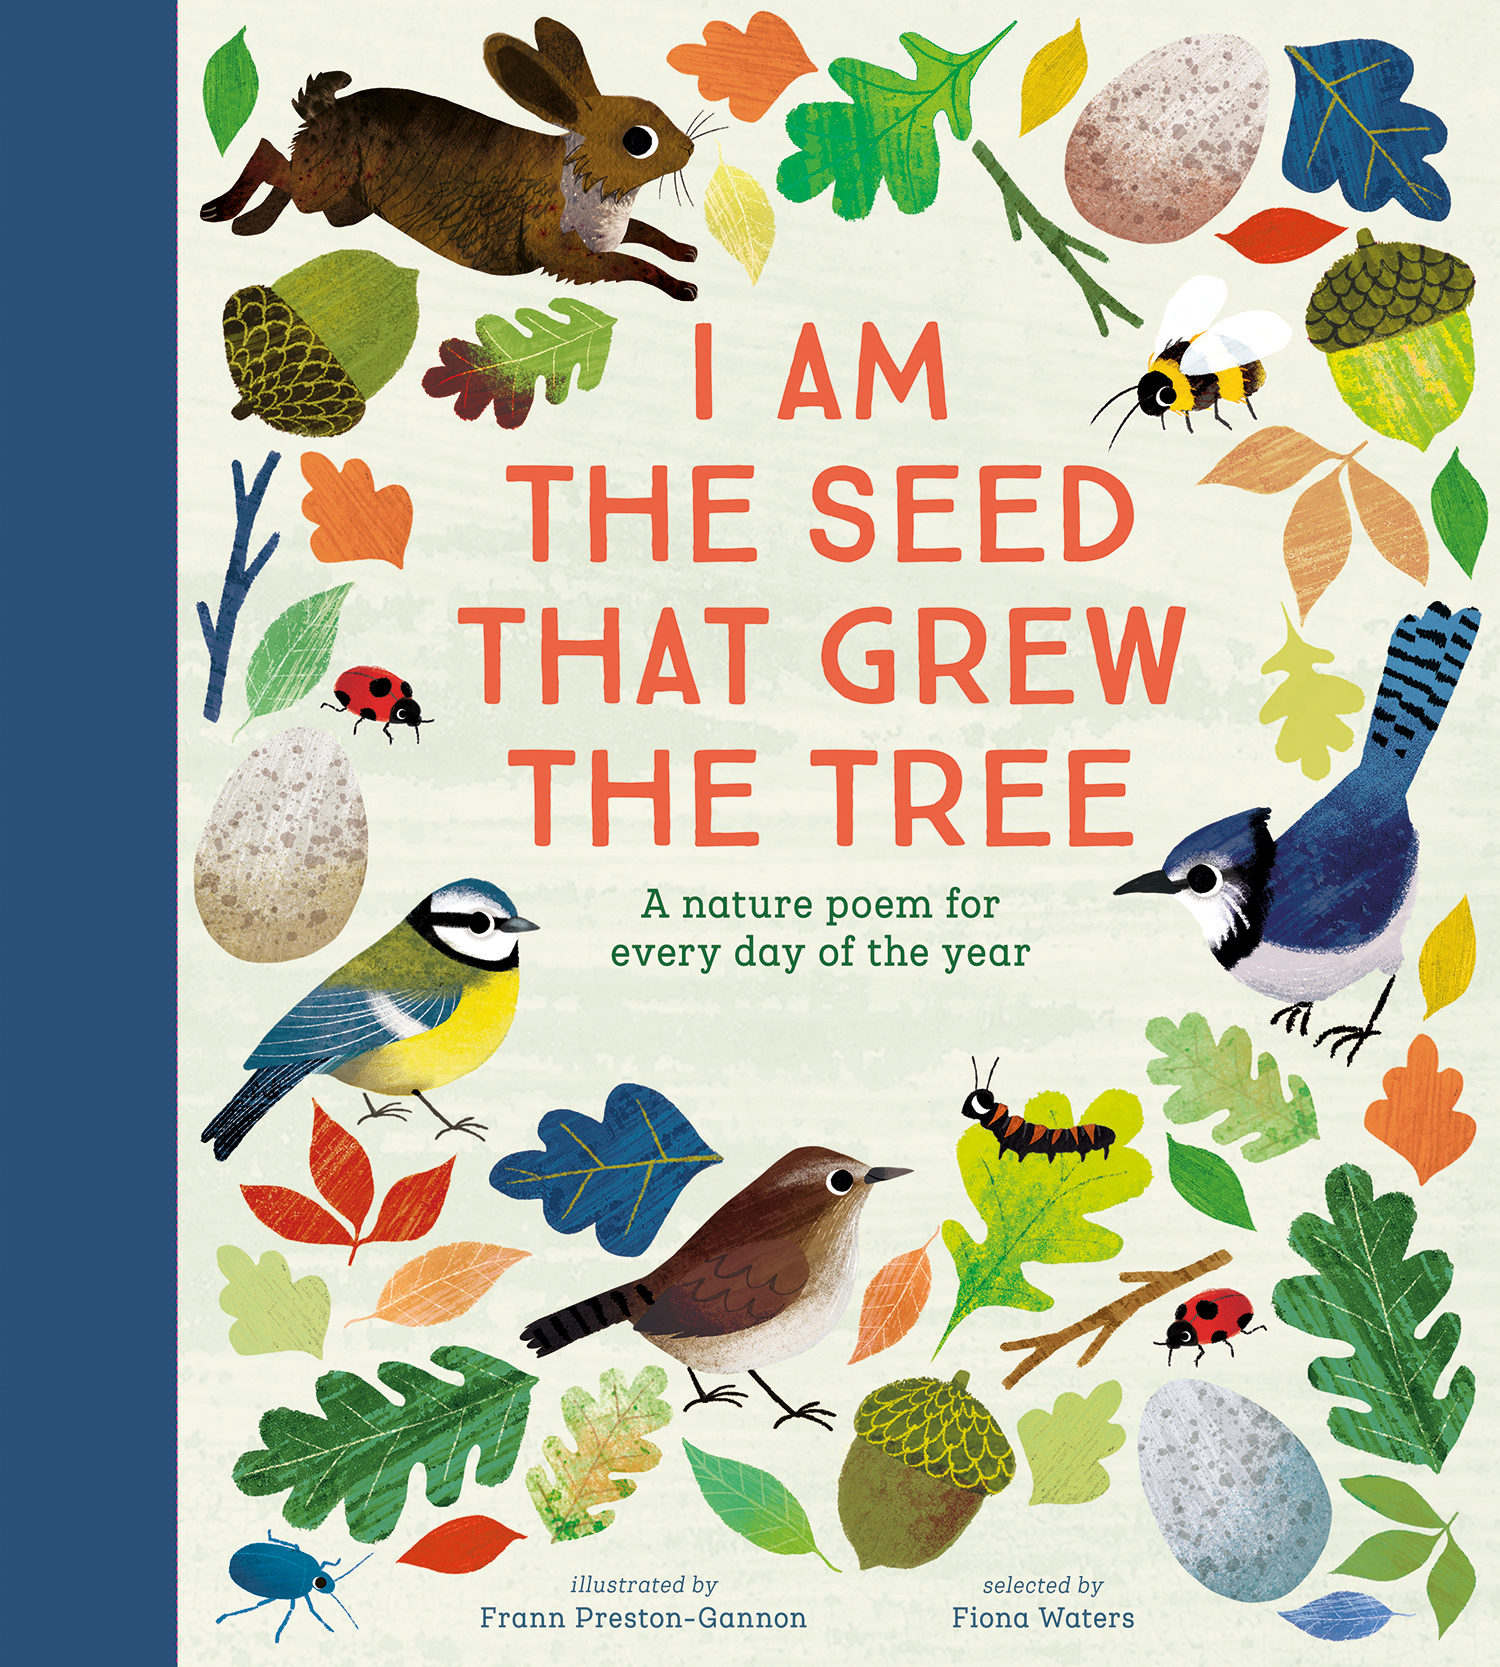 I Am the Seed That Grew the Tree - A Poem for Every Day of the Year